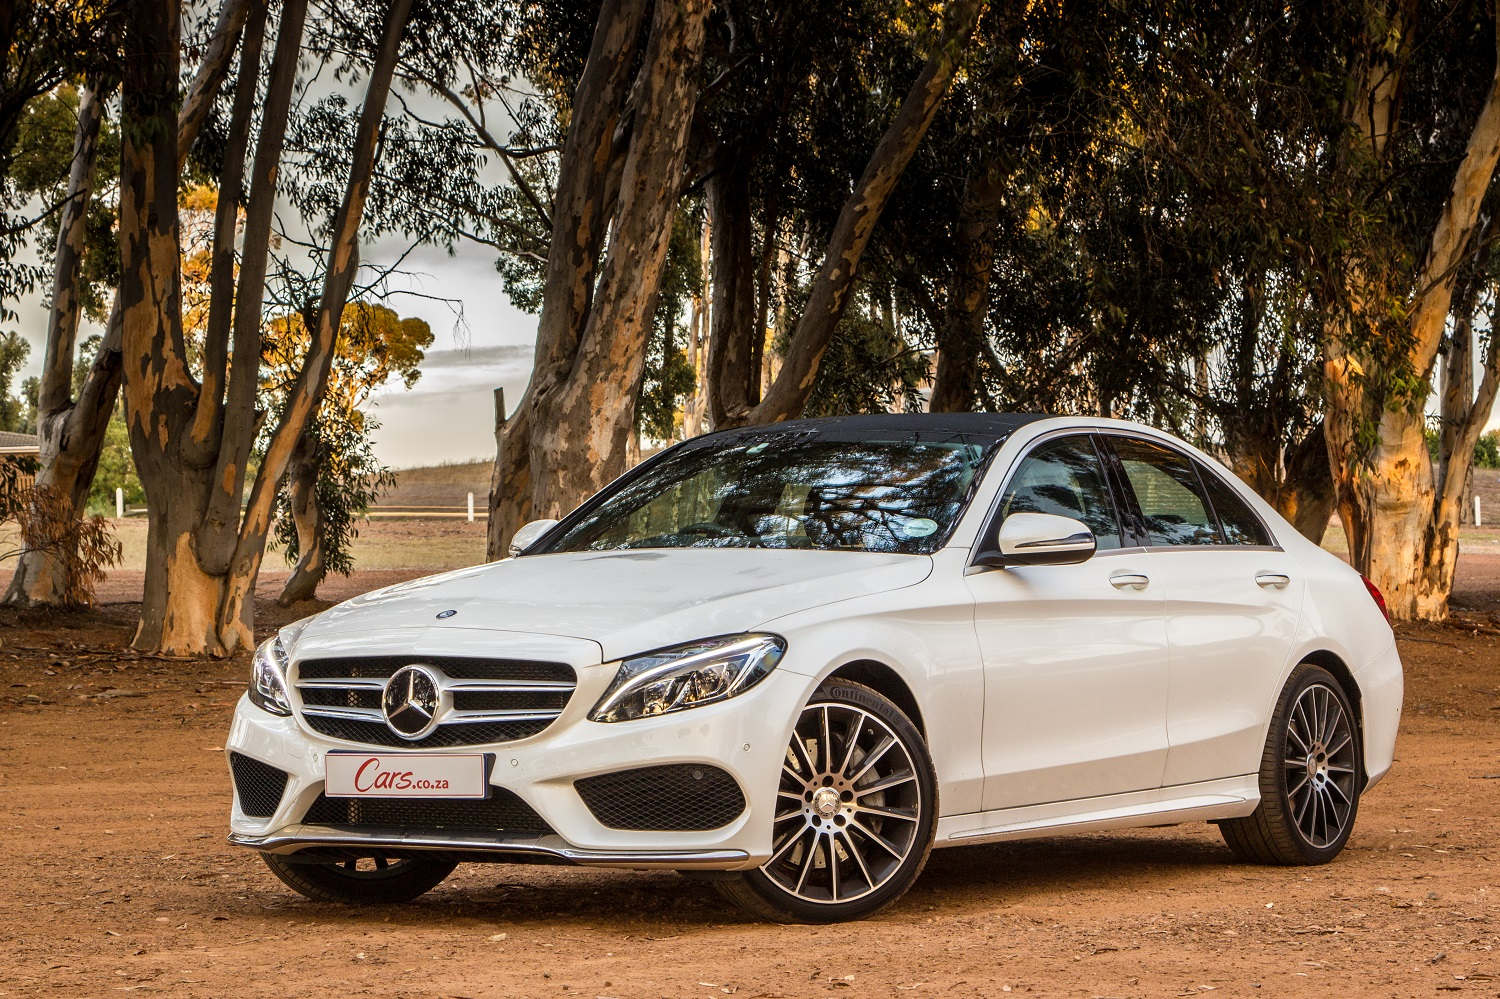 mercedes-benz c300 (2015) review - cars.co.za